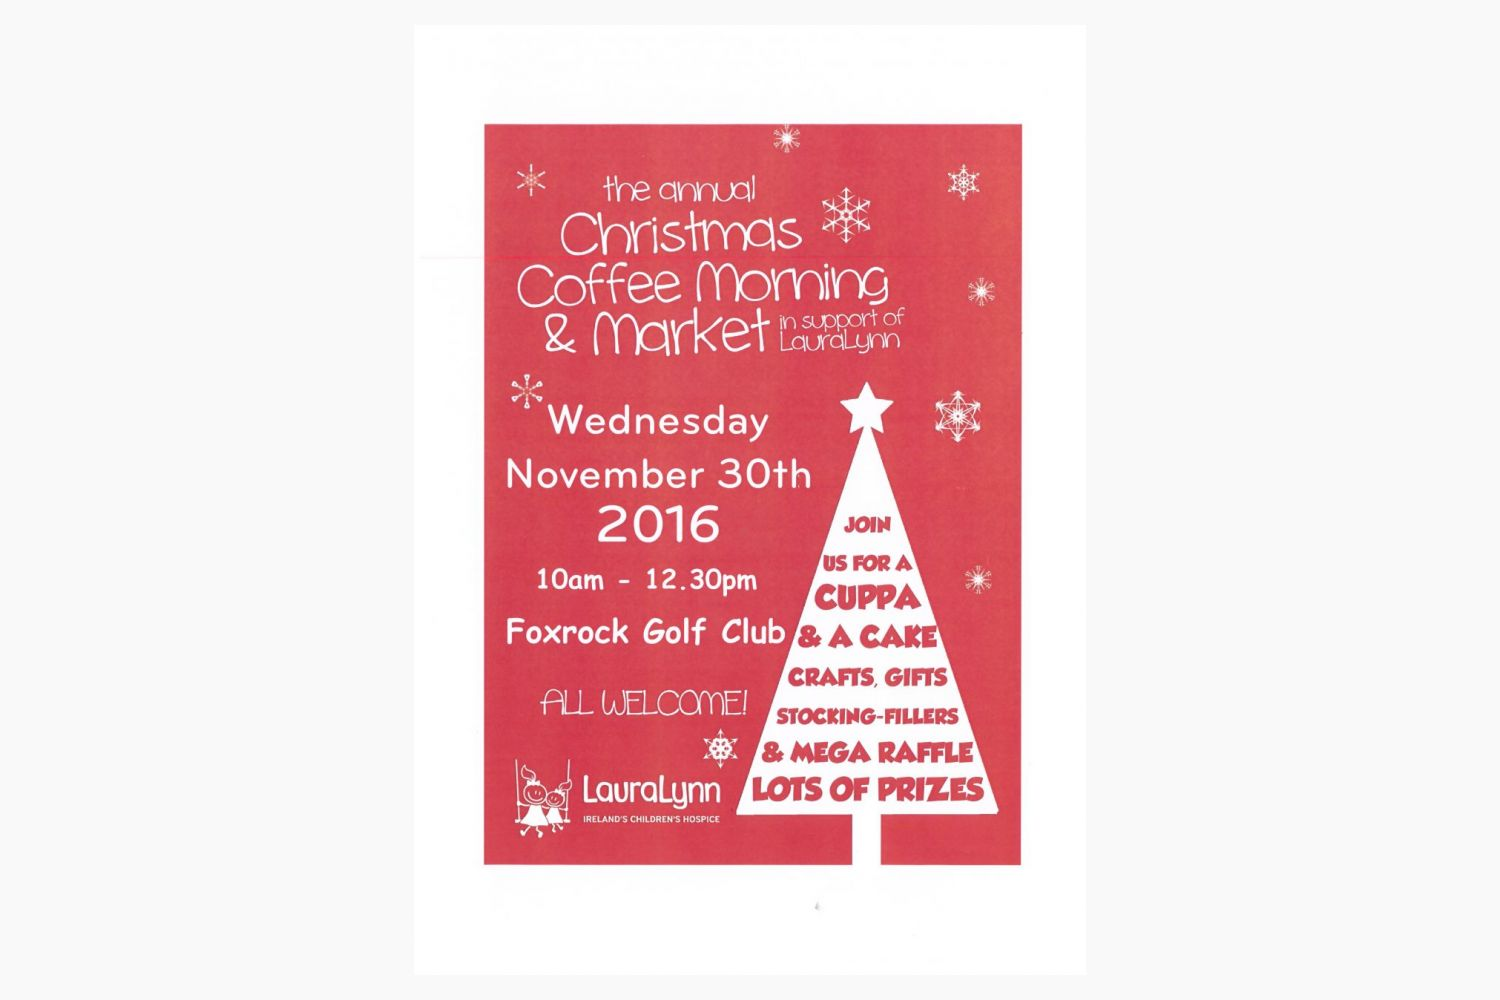 Laura Lynn Christmas Fair  10:00am - 12:30pm Thursday November 30th in Foxrock Golf Club